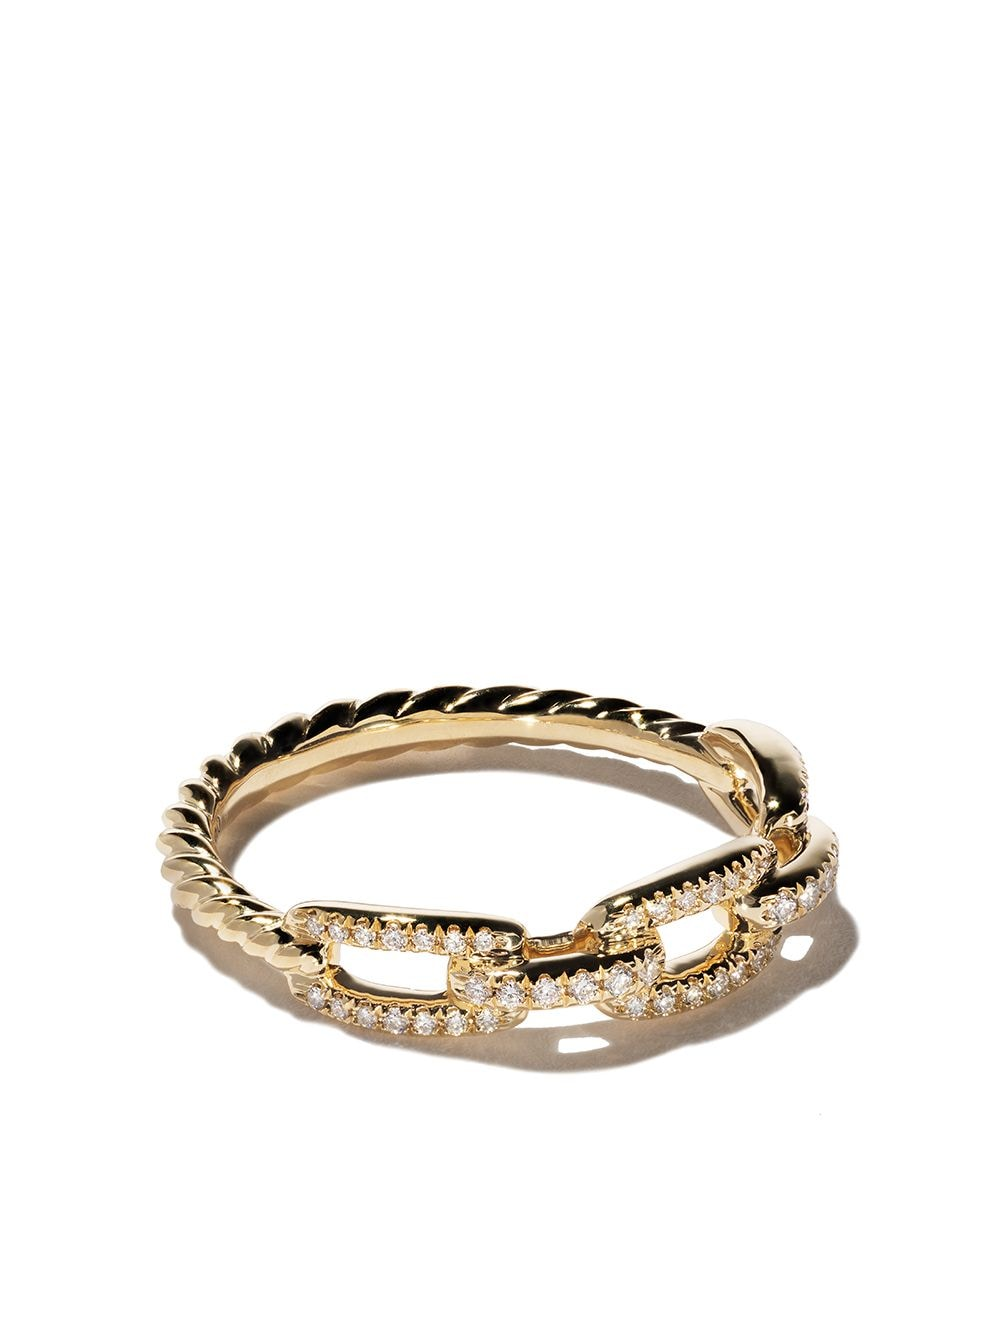 David Yurman 18kt yellow gold Stax single row pavé diamond chain link ring - 88ADI von David Yurman